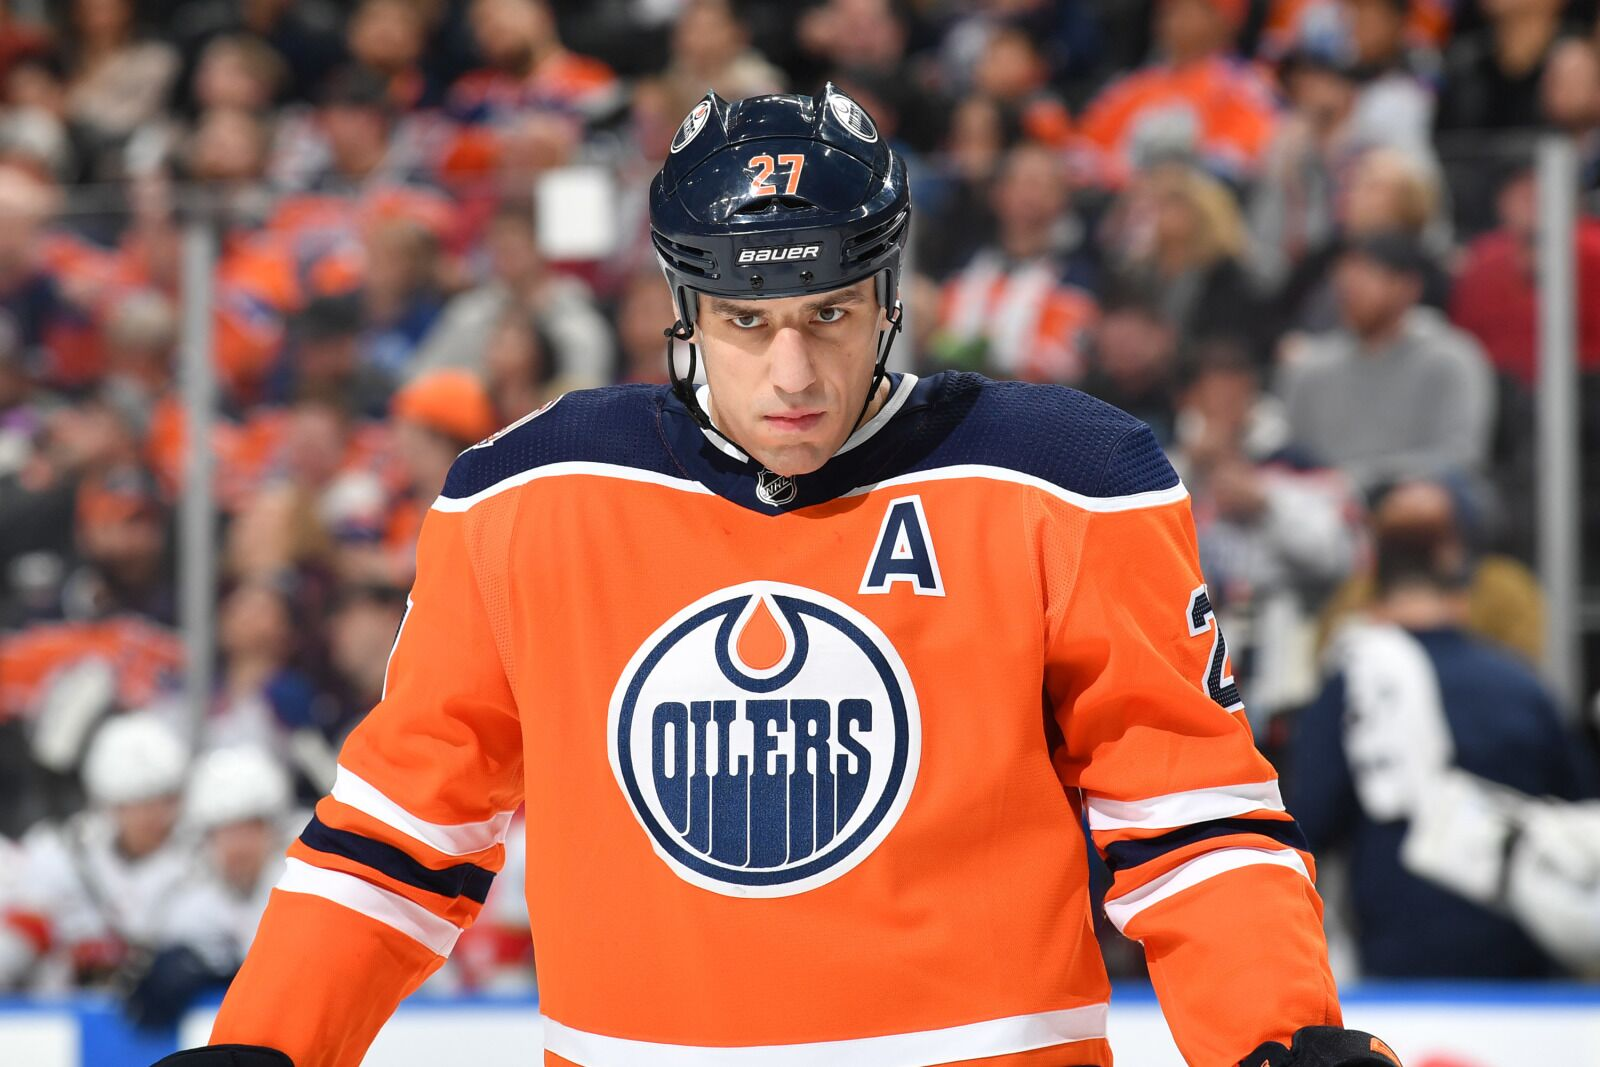 Edmonton Oilers won the trade between Milan Lucic and James Neal